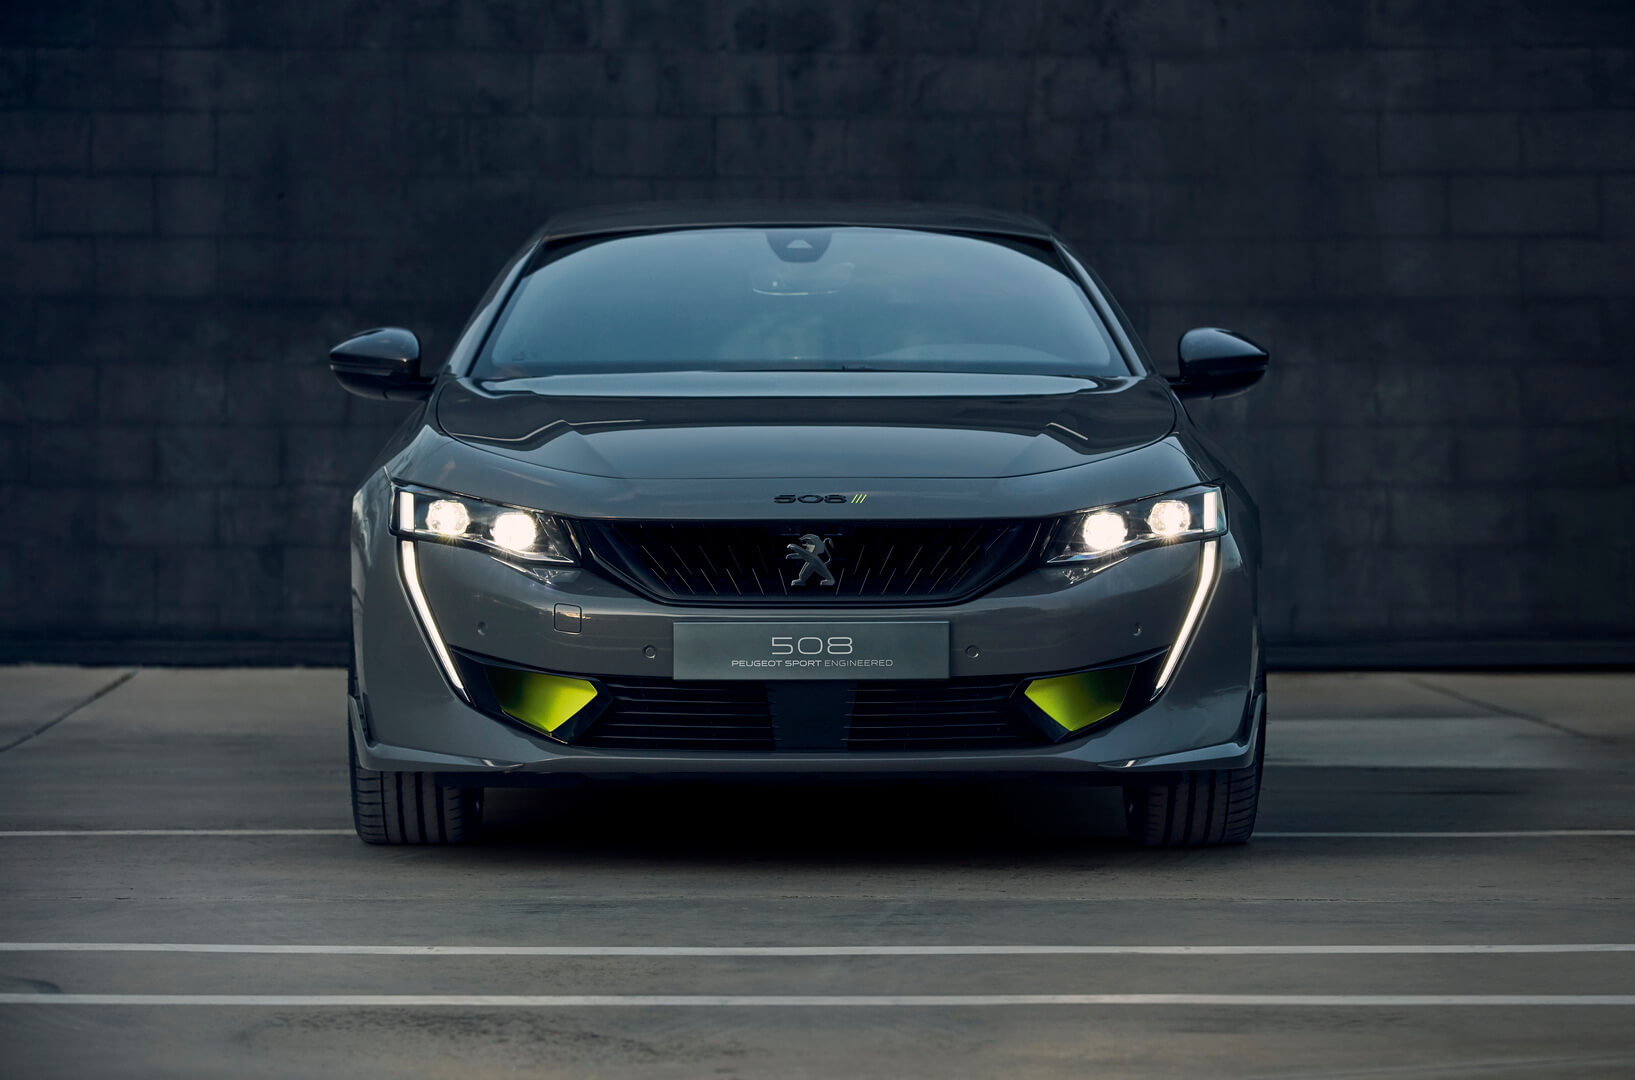 Плагин-гибридный концепт-кар Peugeot 508 Sport Engineered